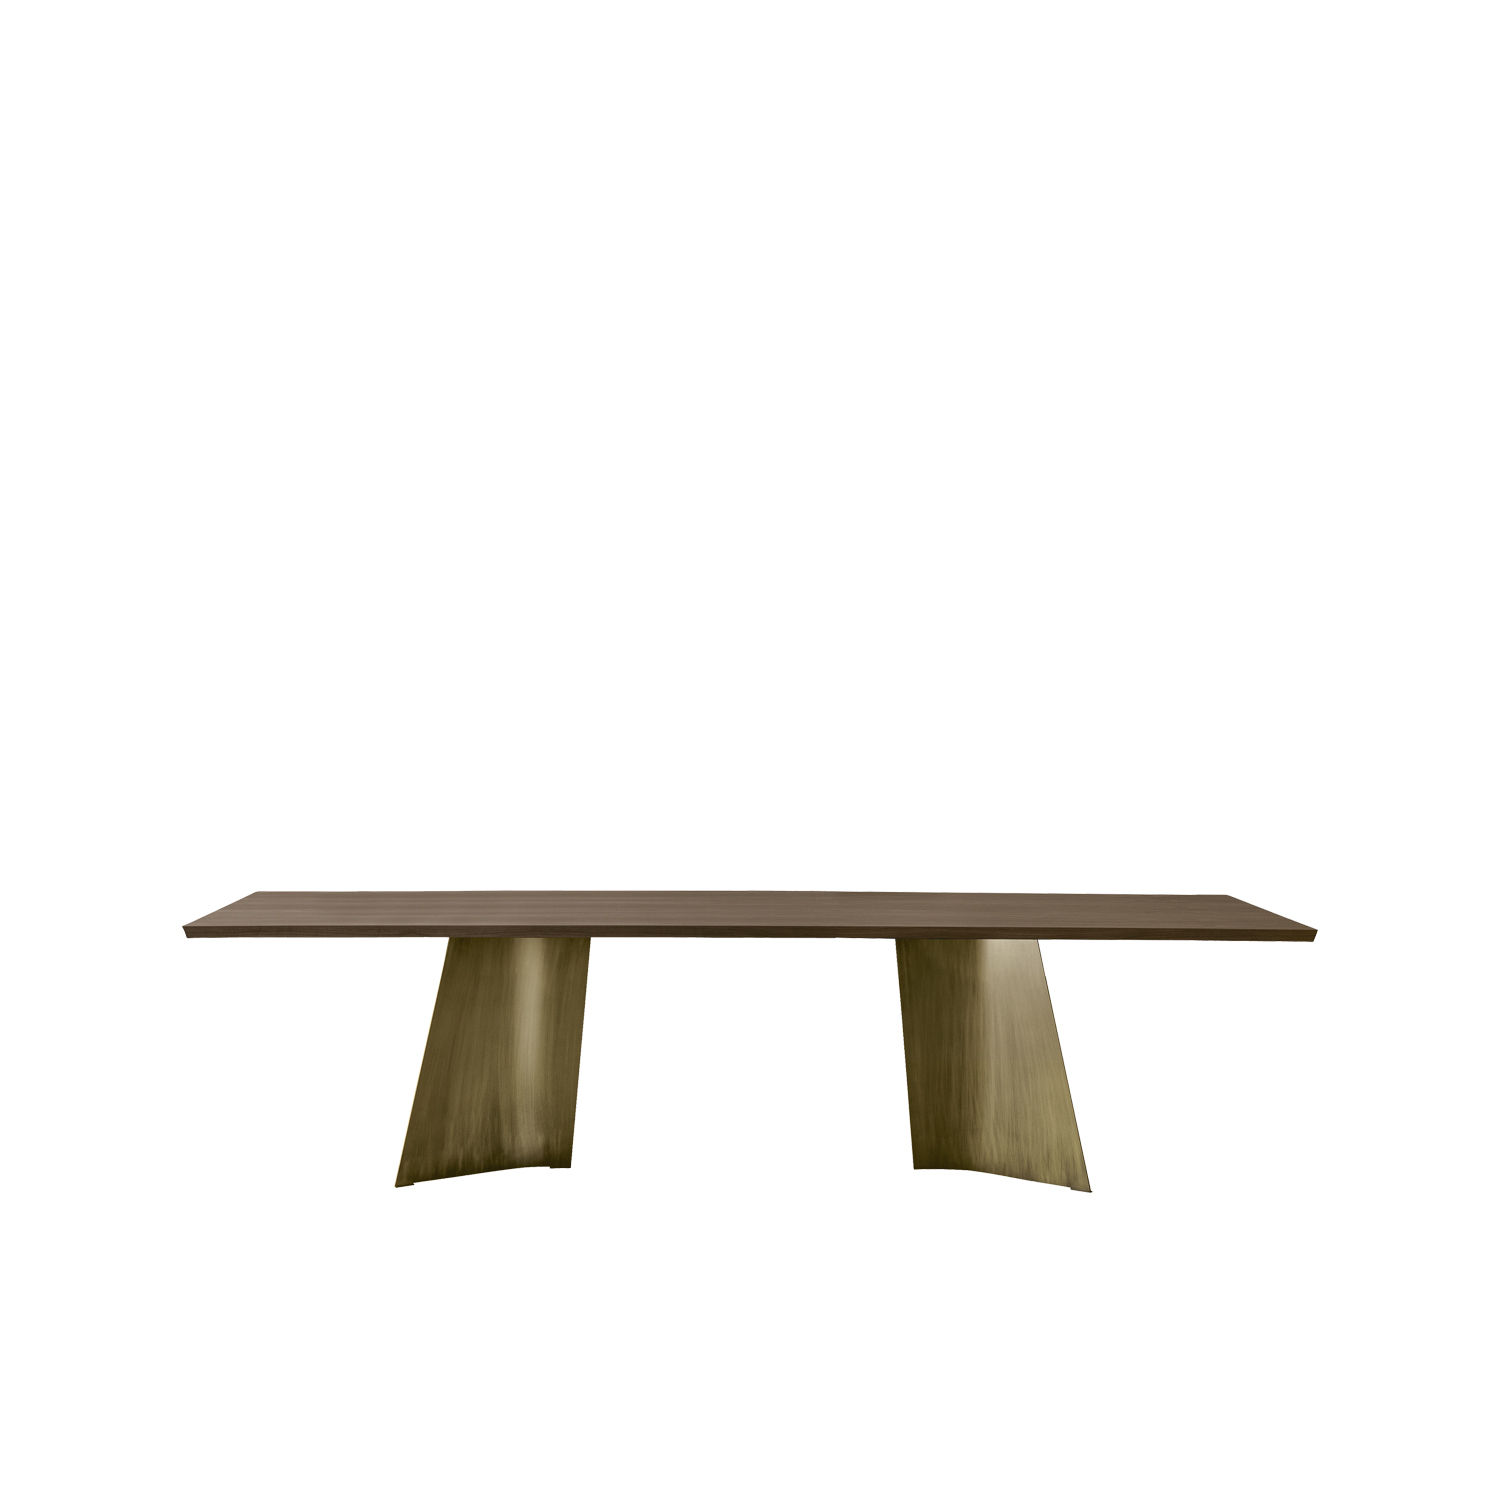 Maggese Table - Fixed table with legs in curved metal lacquered in white, silk grey, dusty grey, black, anthracite, bronzé, black iron or rusty effect. The top, fixed or extendible, is realised in Canaletto walnut, heat-treated oak, flamed oak, black ash, vintage oak, 700 oak, Fenix with wooden edges and white calacatta or black travertino ceramic. 